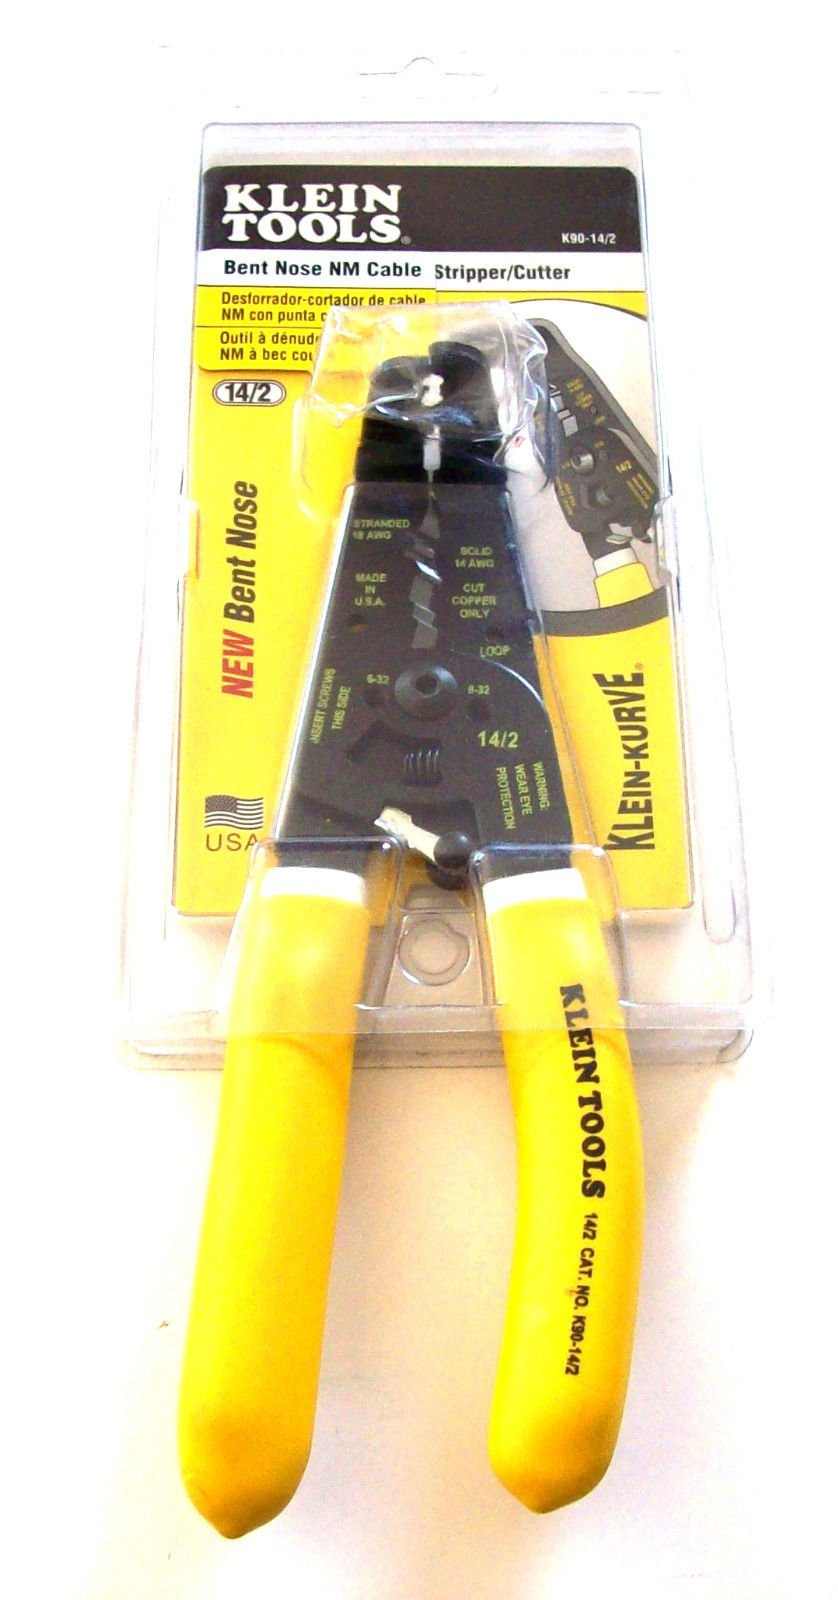 KLEIN TOOLS K90-14/2 ROMEX NM CABLE WIRE STRIPPER CUTTER PLIER USA ELECTRICAL ;supply_by_blattsbargains